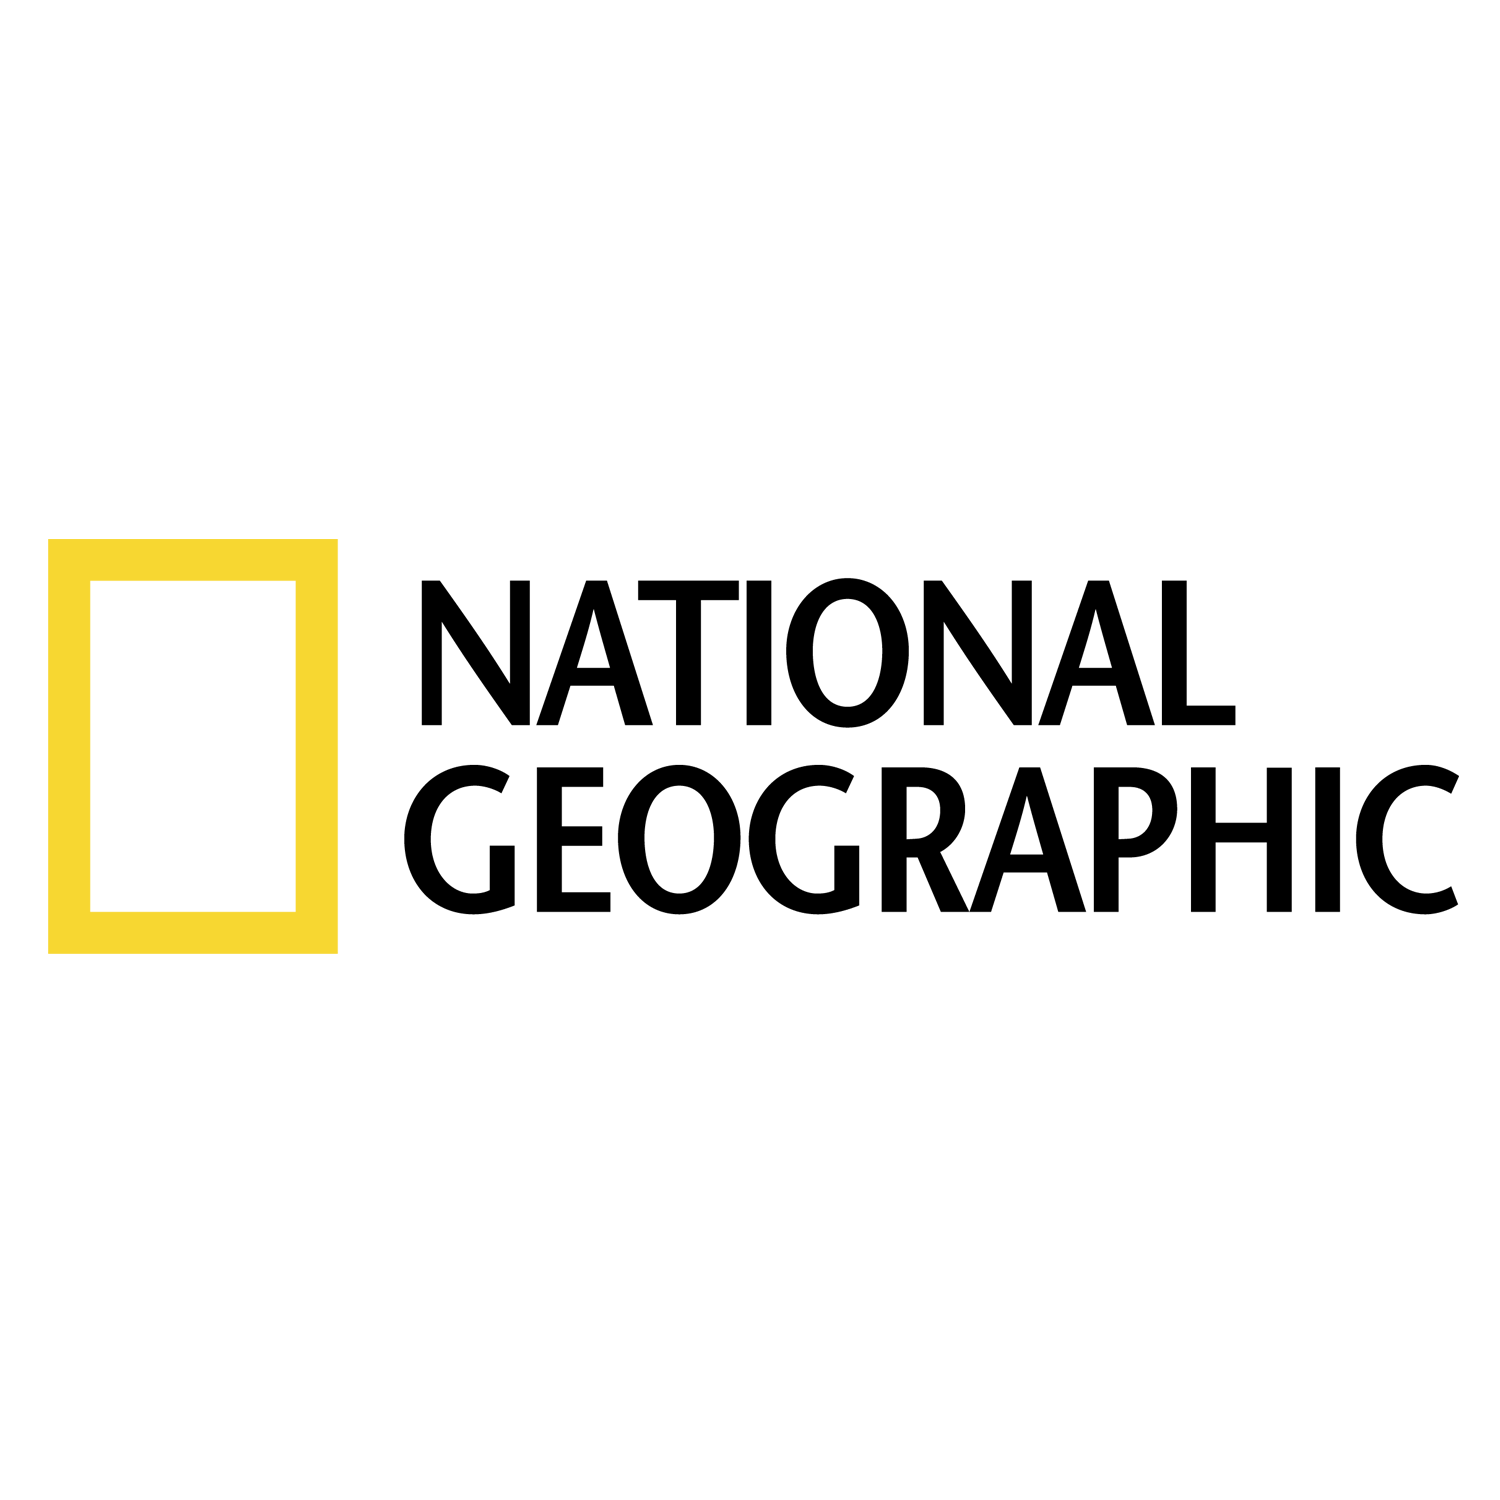 national-geographic-logo-vector.png